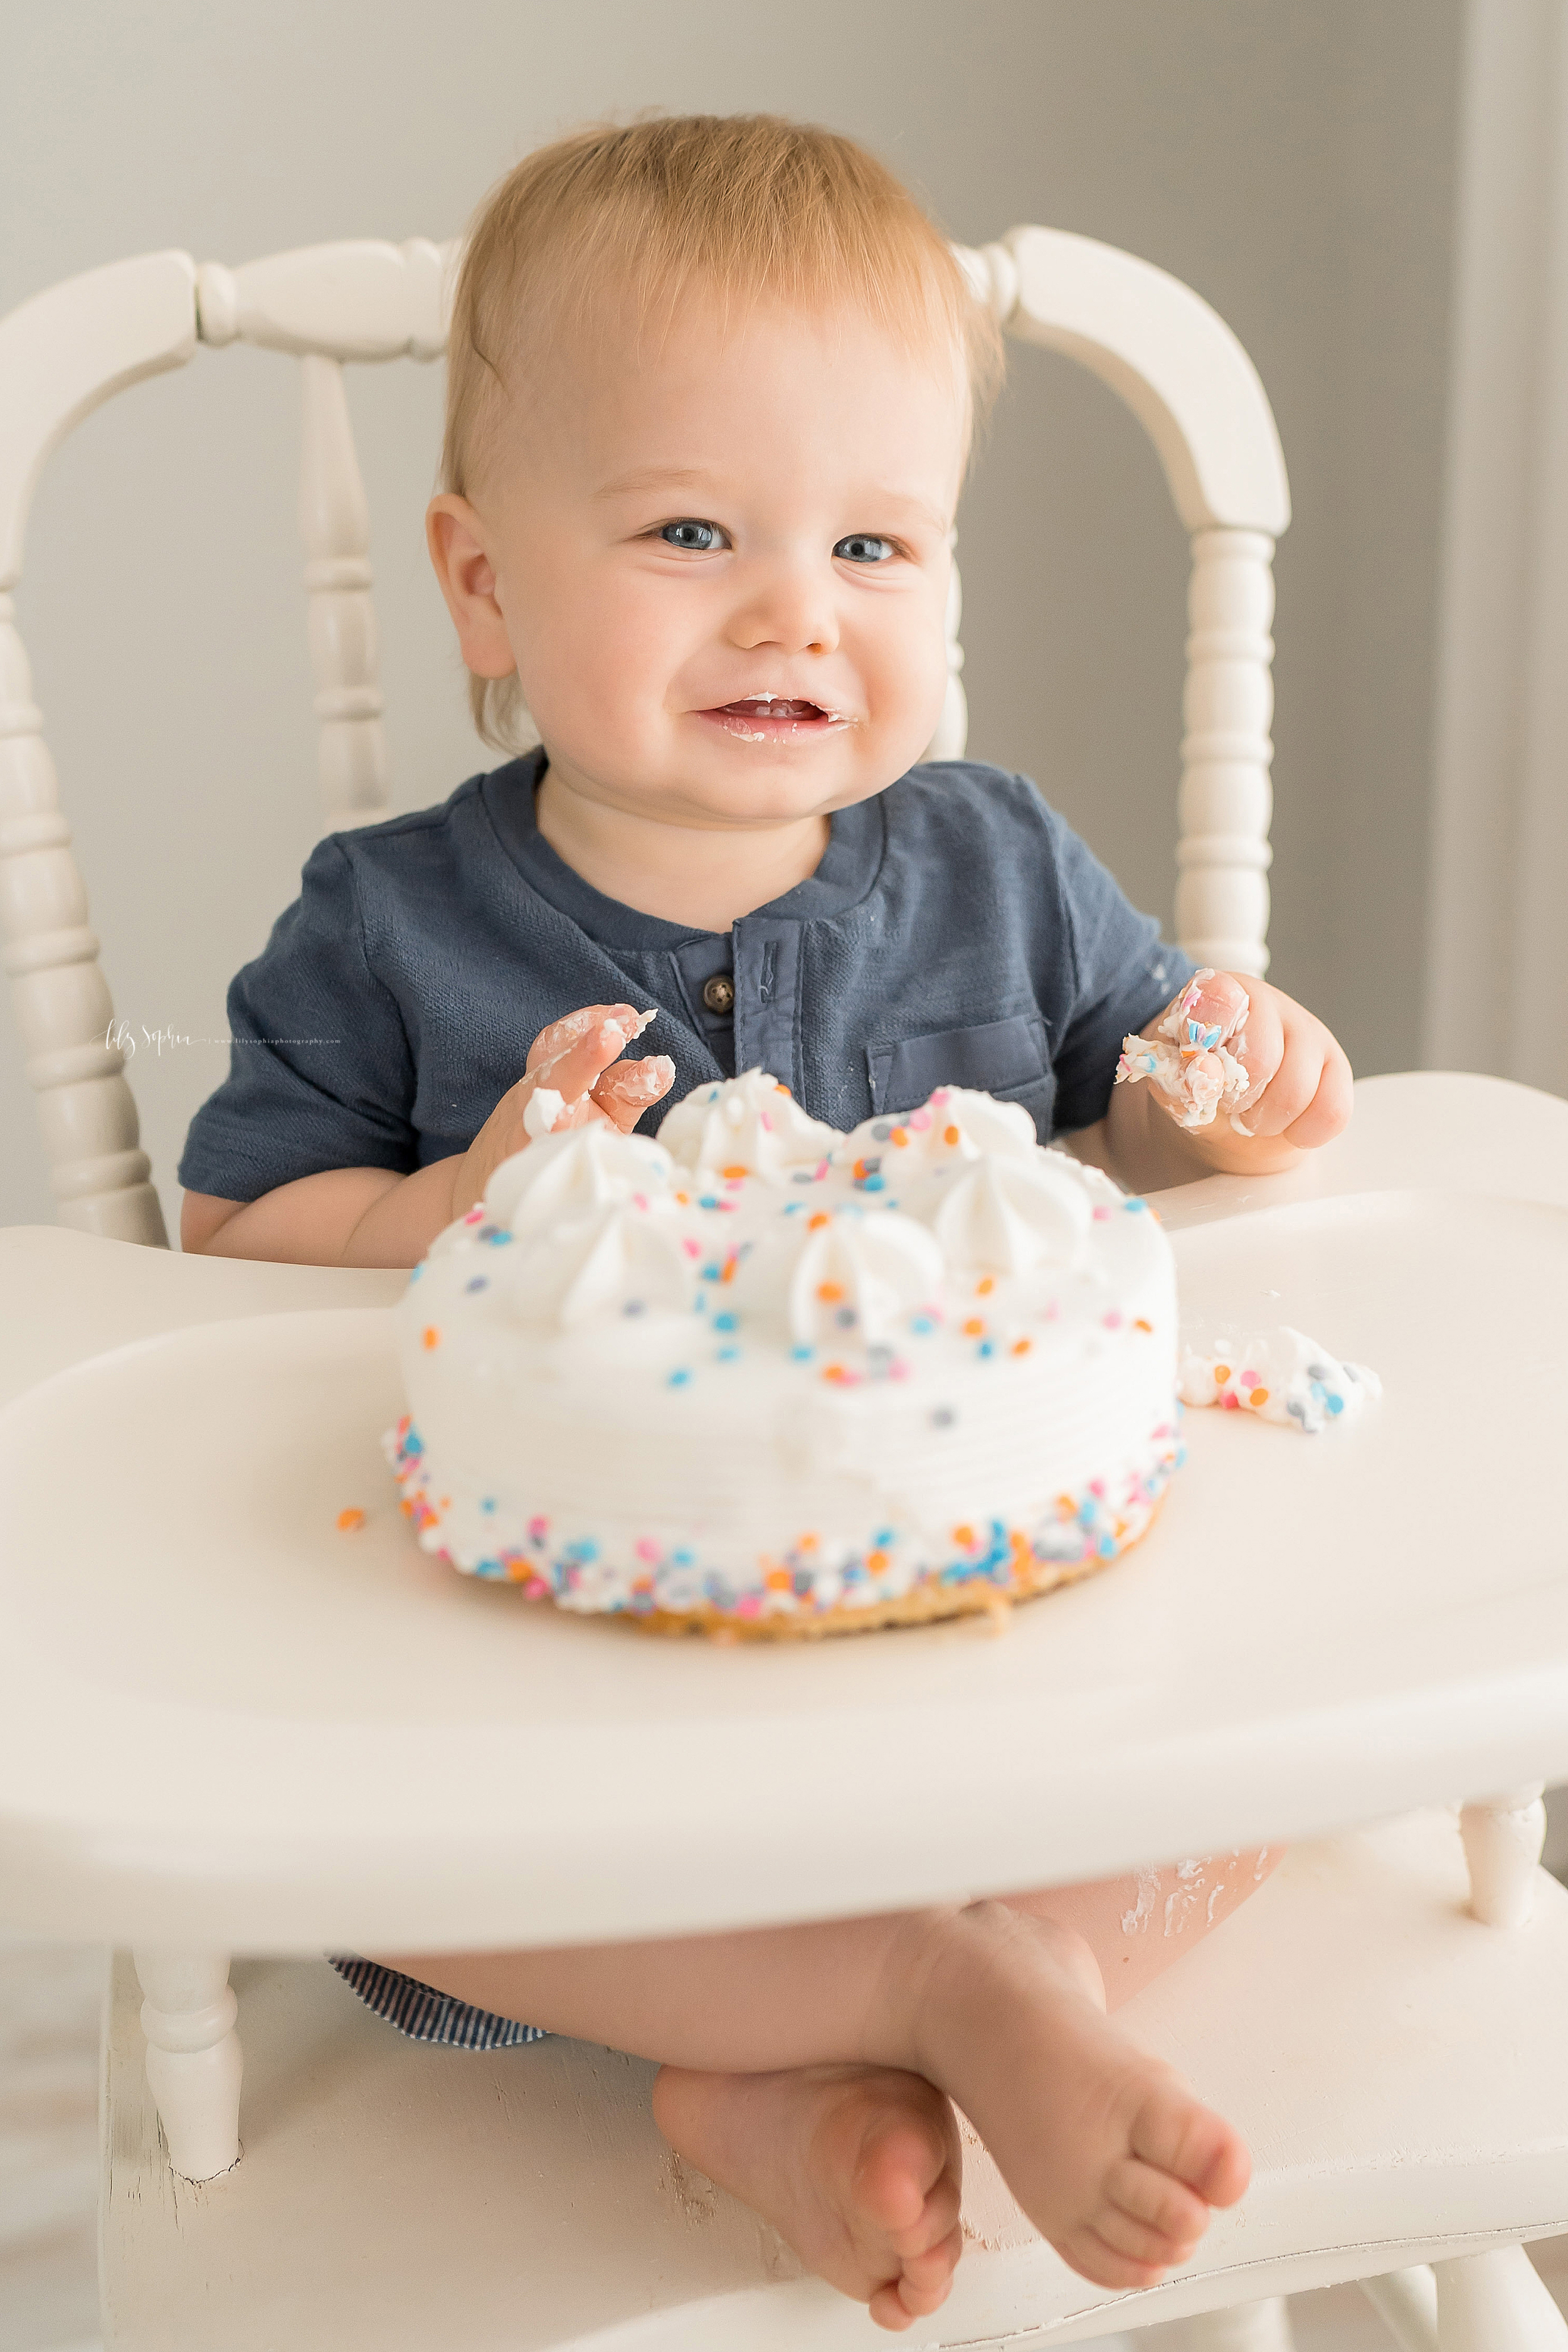 Milestone photo of a baby boy with icing on his hands in a natural light studio as he samples his first birthday cake while sitting in an antique highchair in Atlanta.